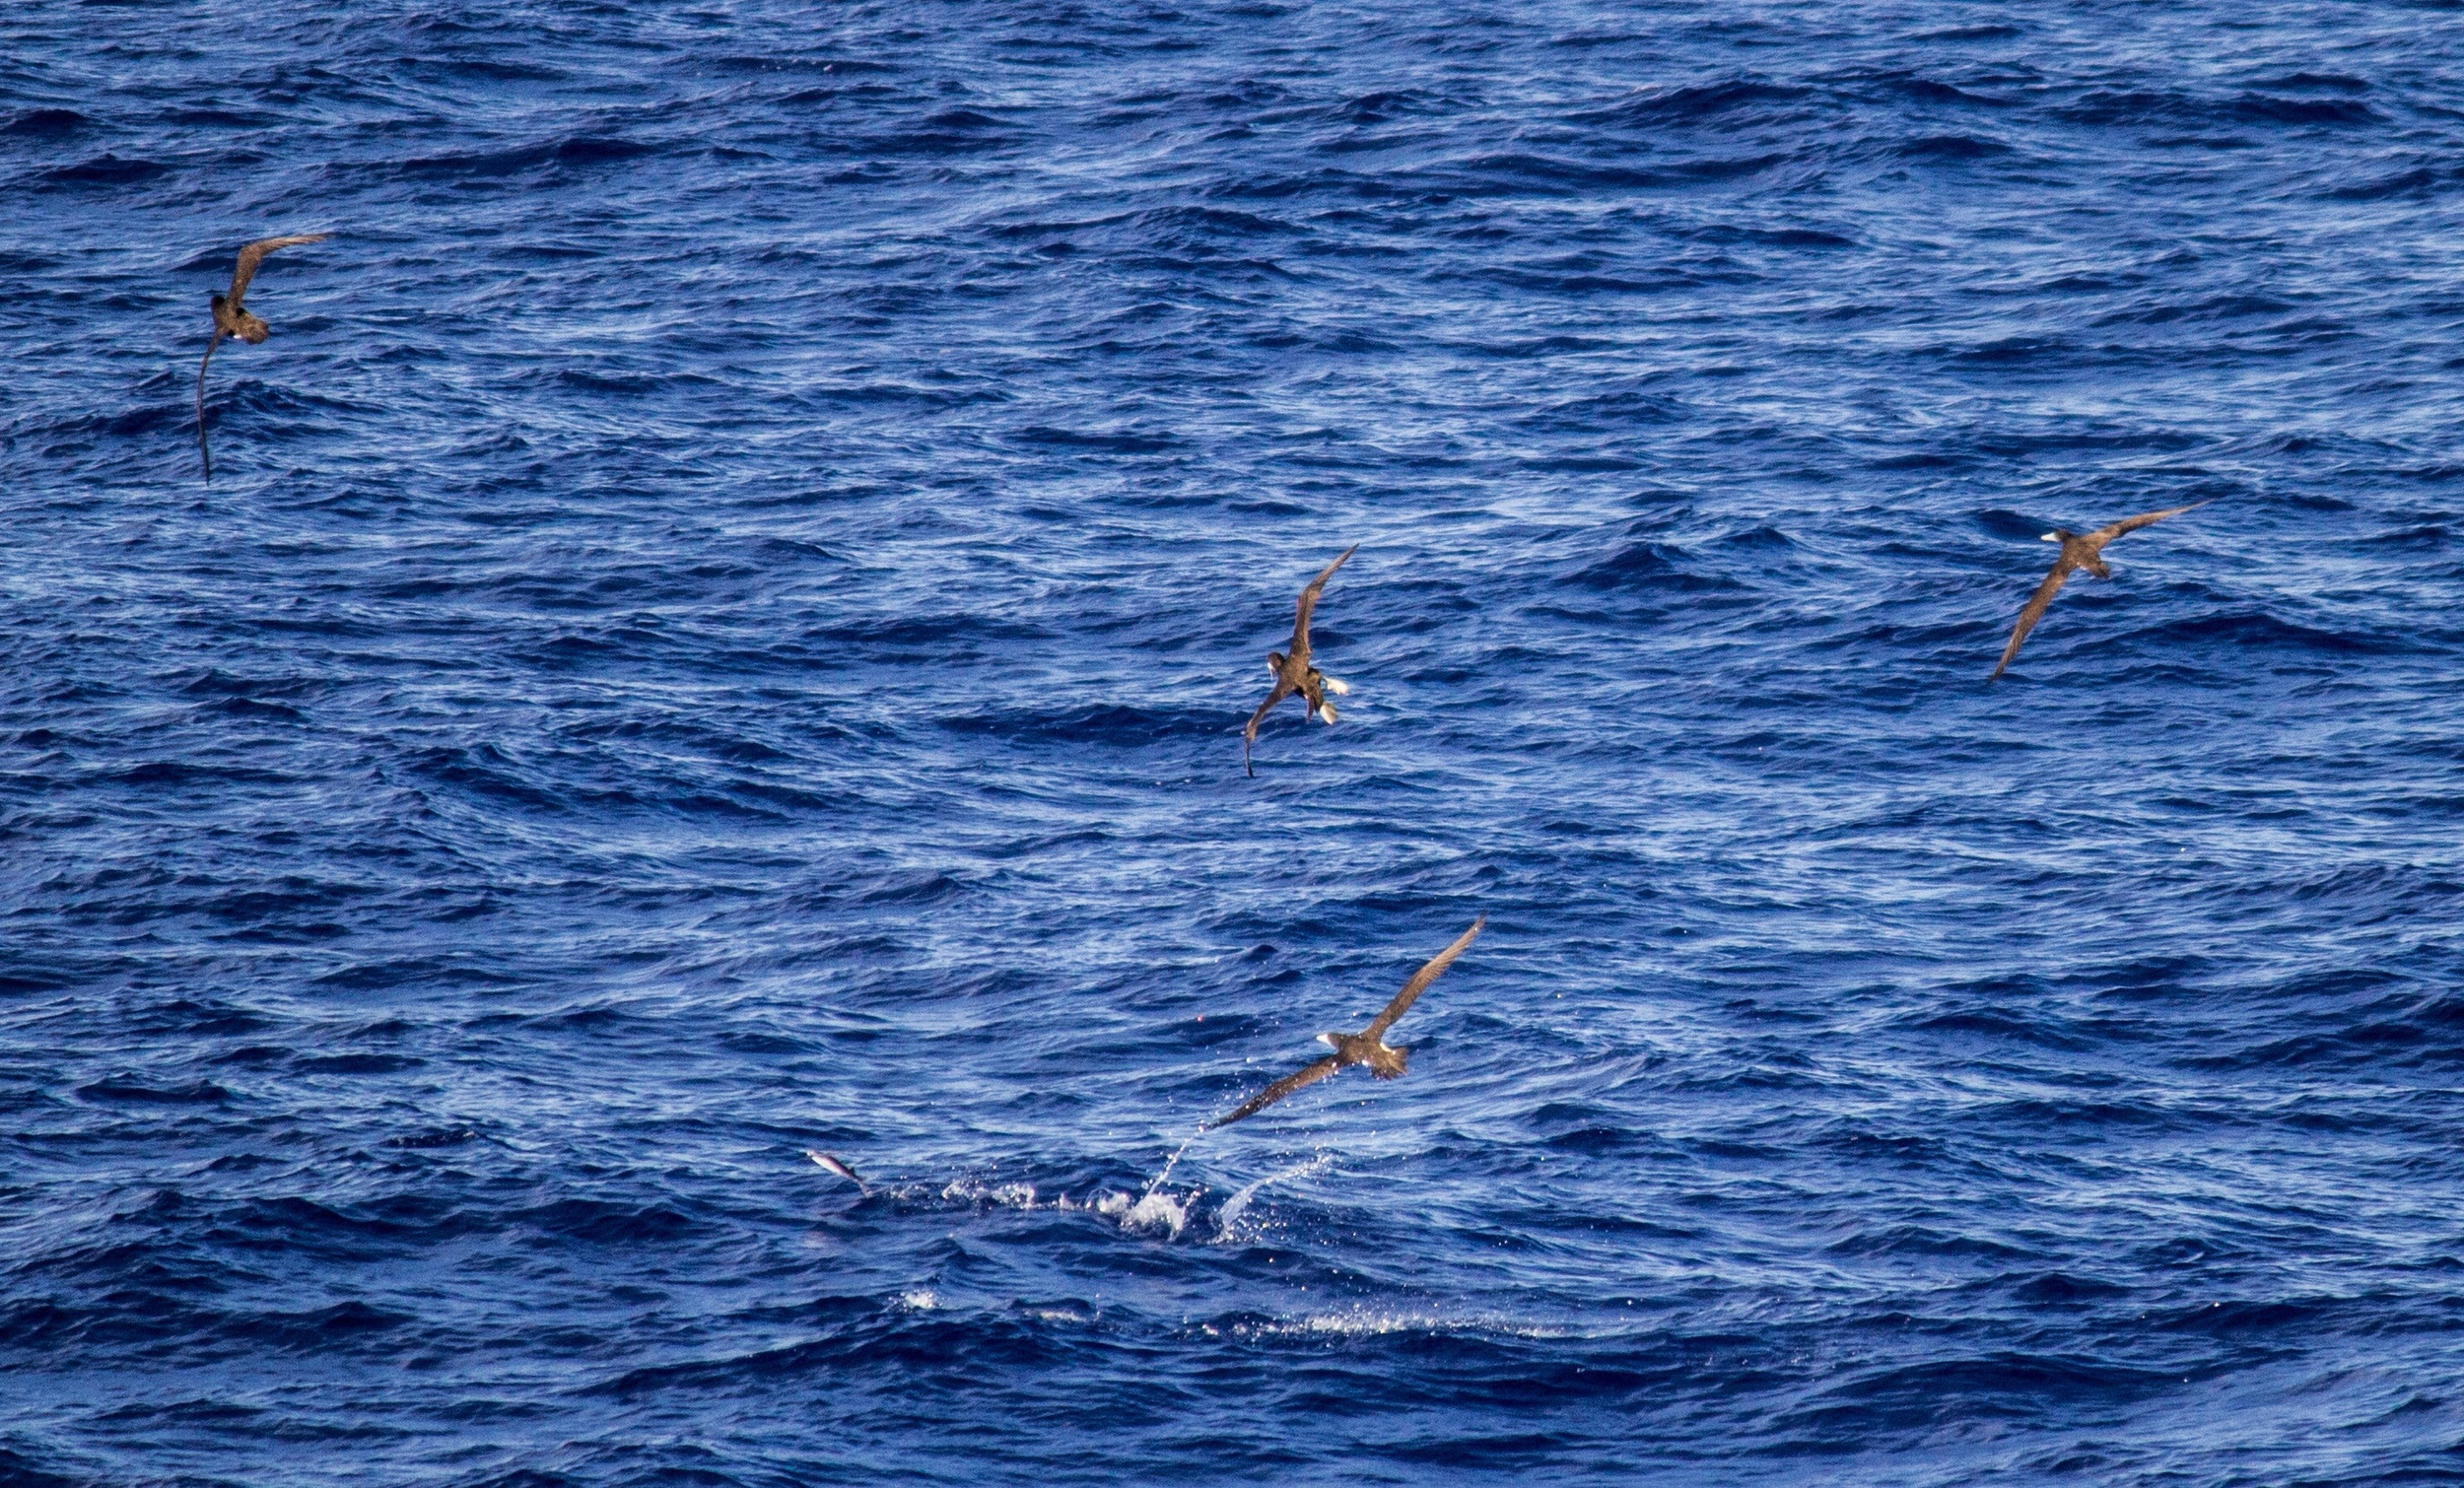 Brown boobies in pursuit of a flying fish. Willis Island, Coral Sea.